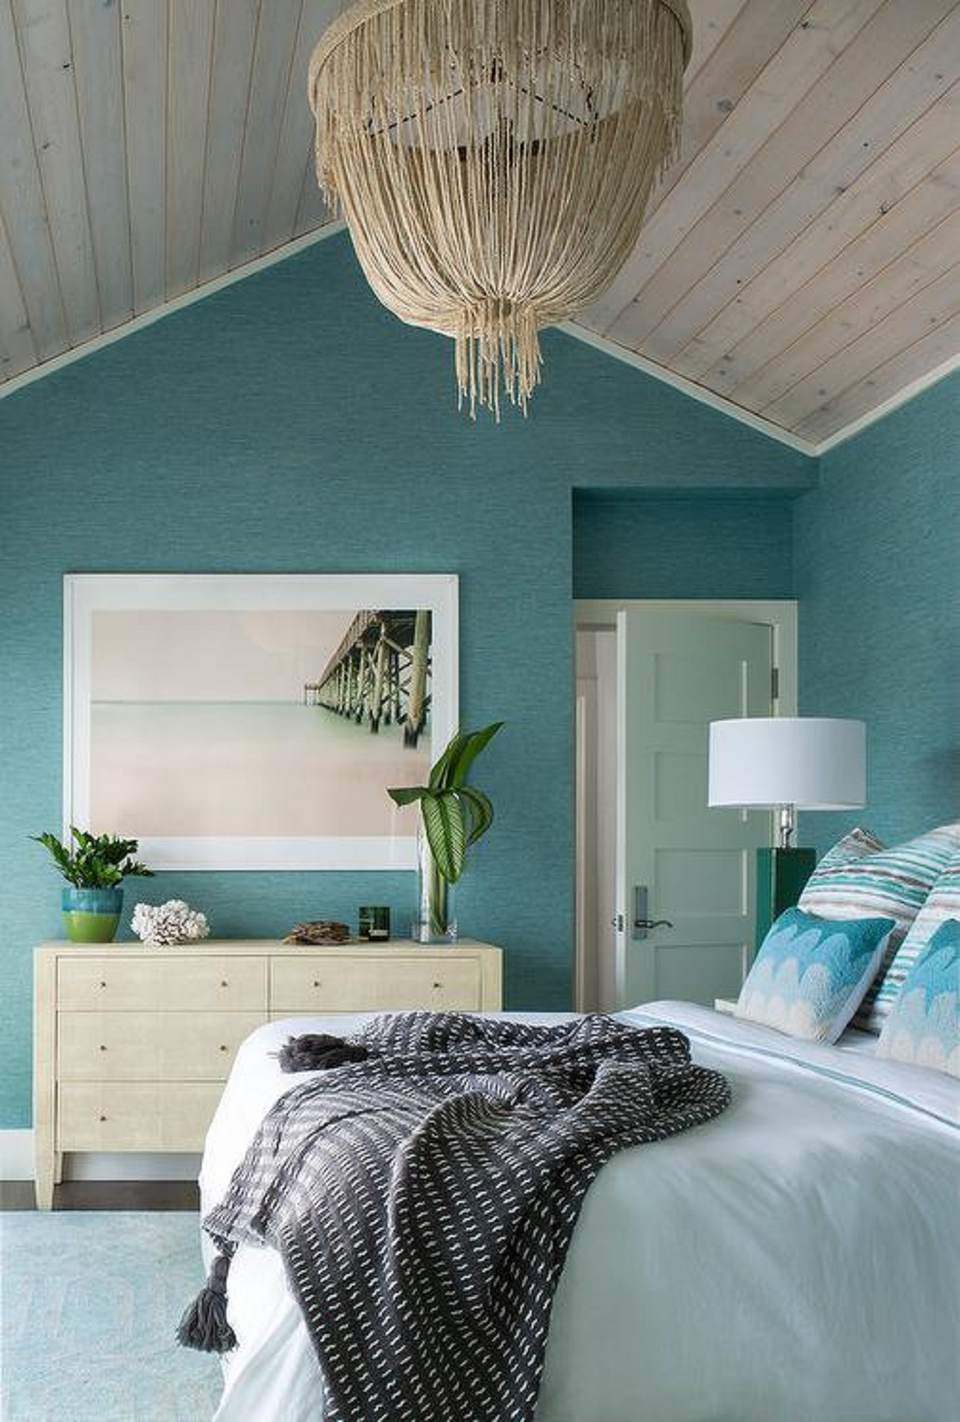 Beach bedroom with grass light fixture